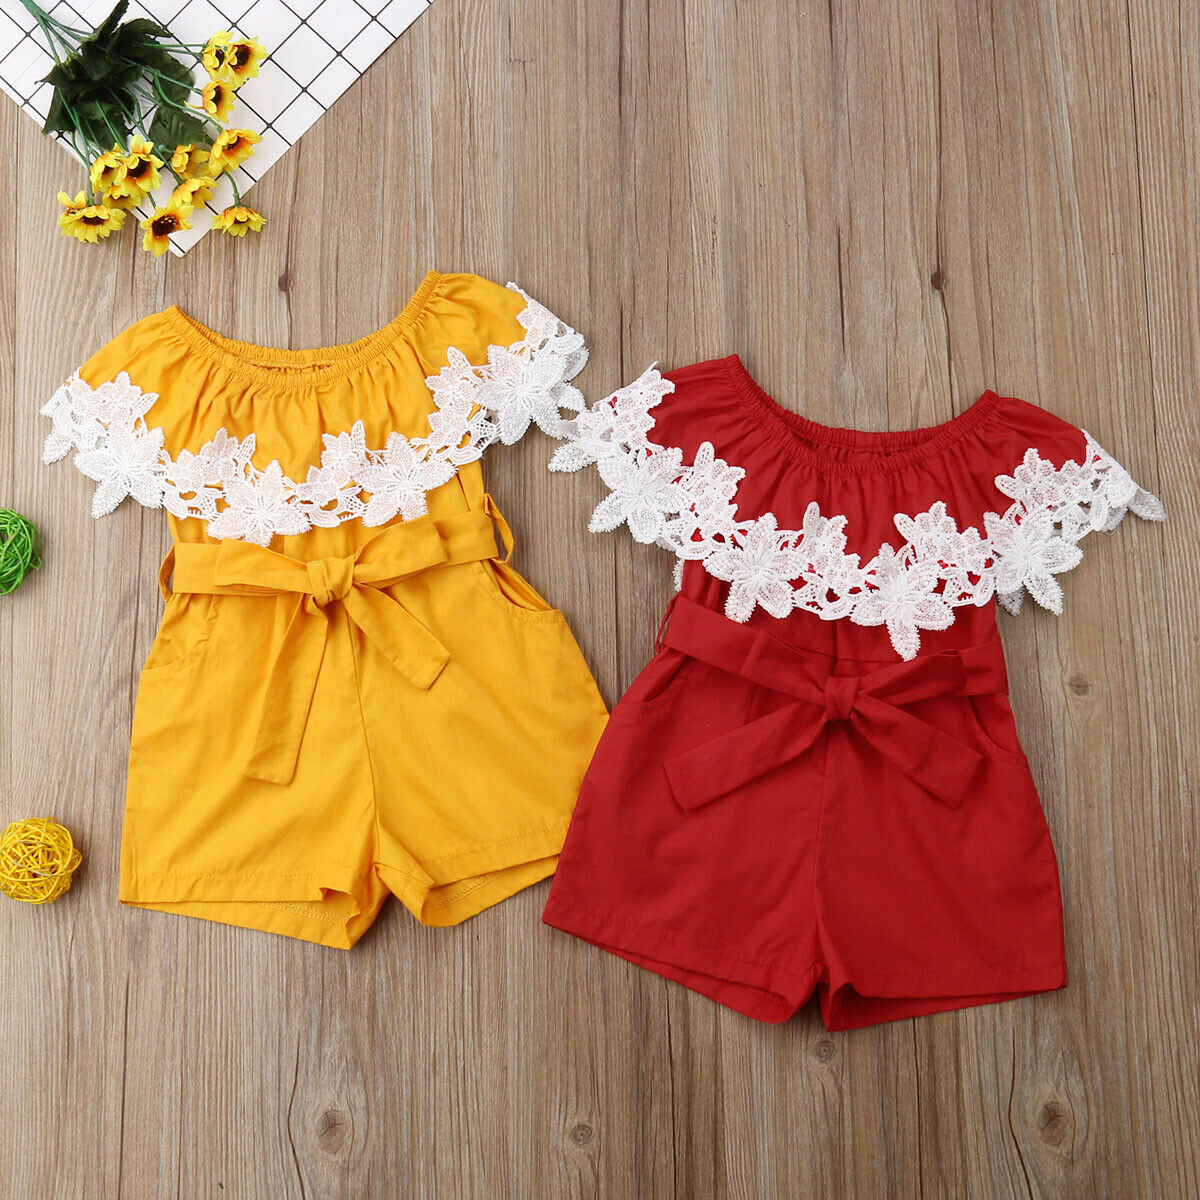 Newborn Baby Girl Clothes Lace Flower Solid Color Rompers Jumpsuit One-Piece Outfit Playsuit